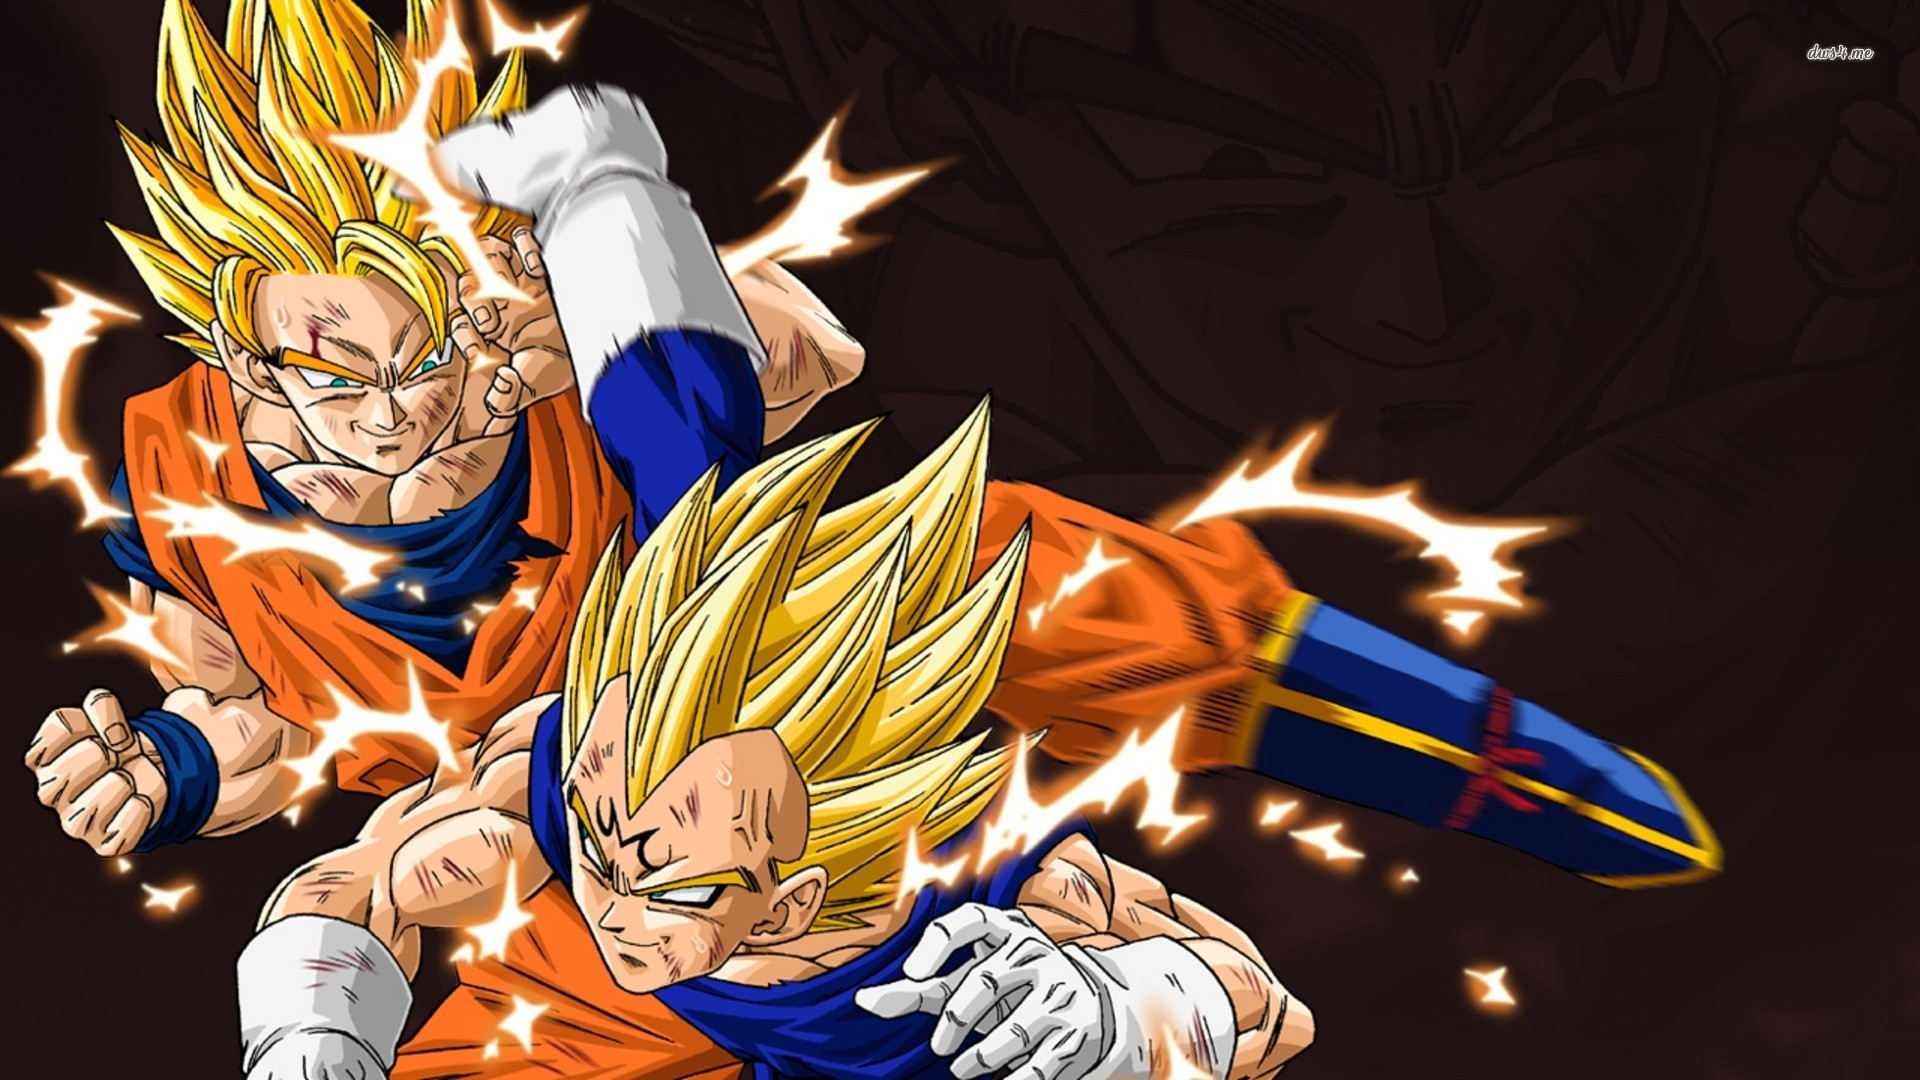 Collection Of Dragon Ball Z Wallpaper On Hdwallpapers 1920x1080